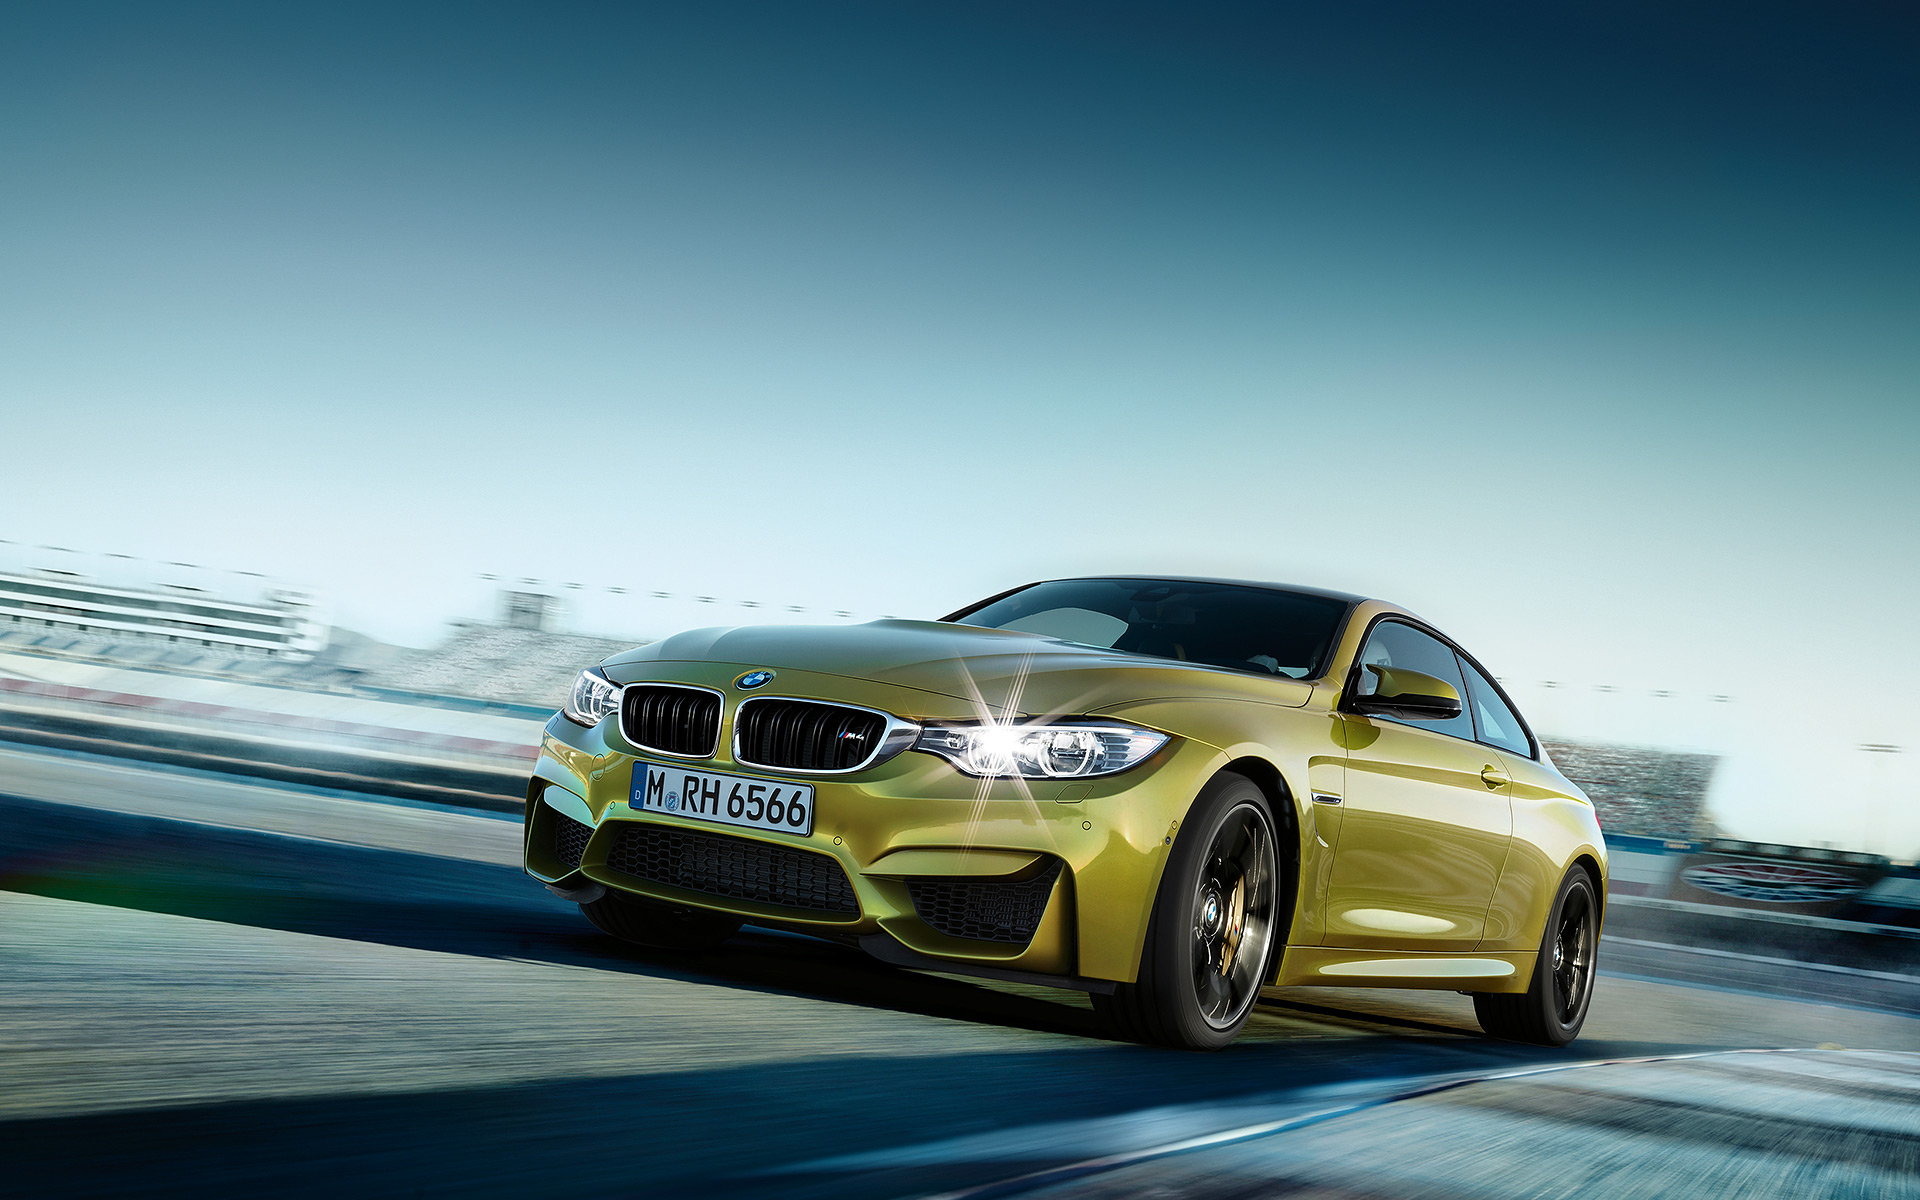 M2 M4 M5 Are You Ready For The All-new Bmw M4 Coupe And Bmw M3 Sedan?